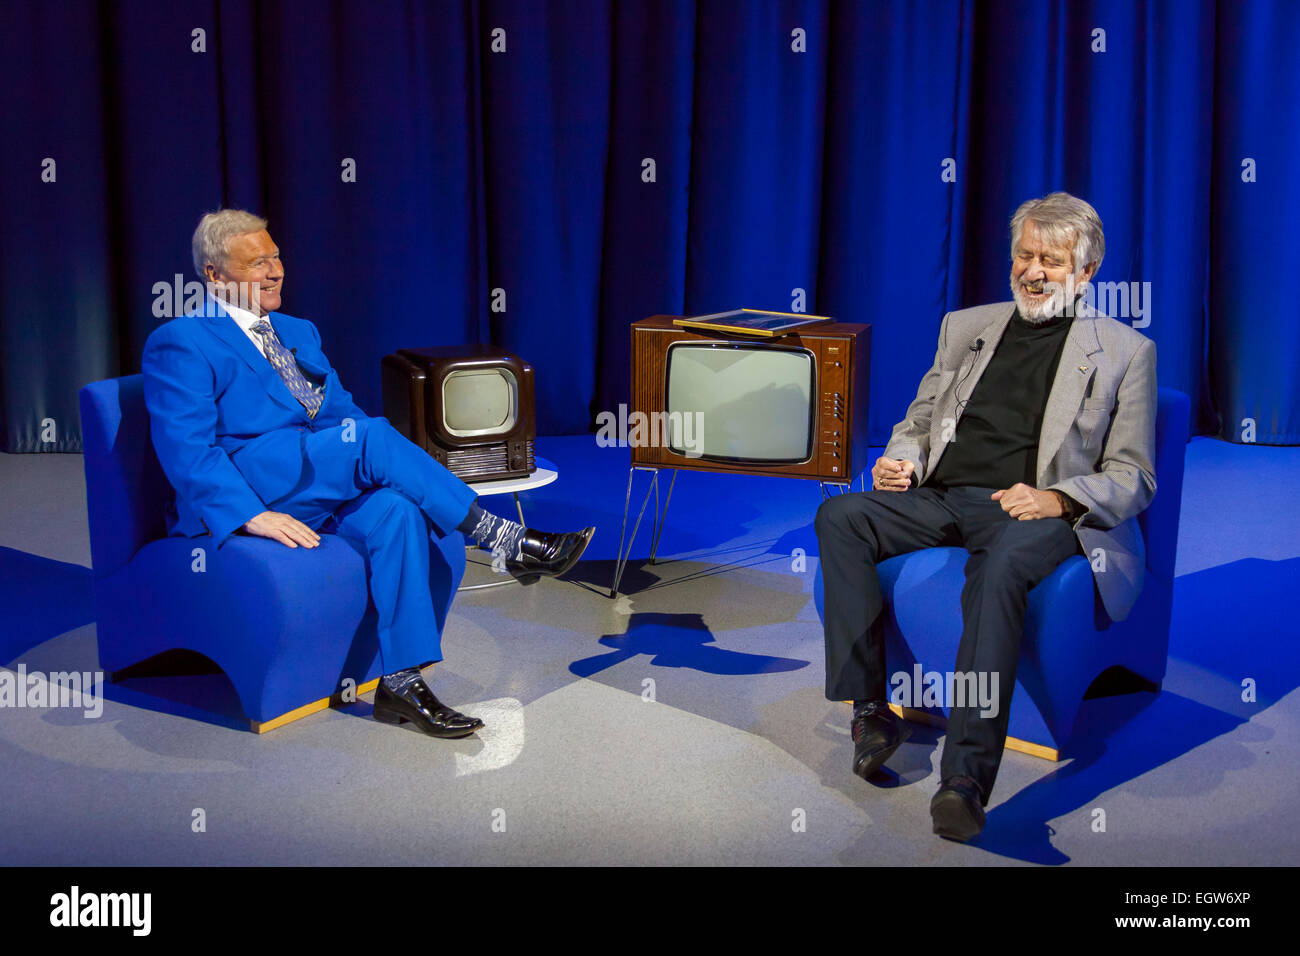 Walsall, West Midlands, UK. 2 March 2015. David Hamilton (L) with broadcaster and DJ Ed 'Stewpot' Stewart at the - Stock Image